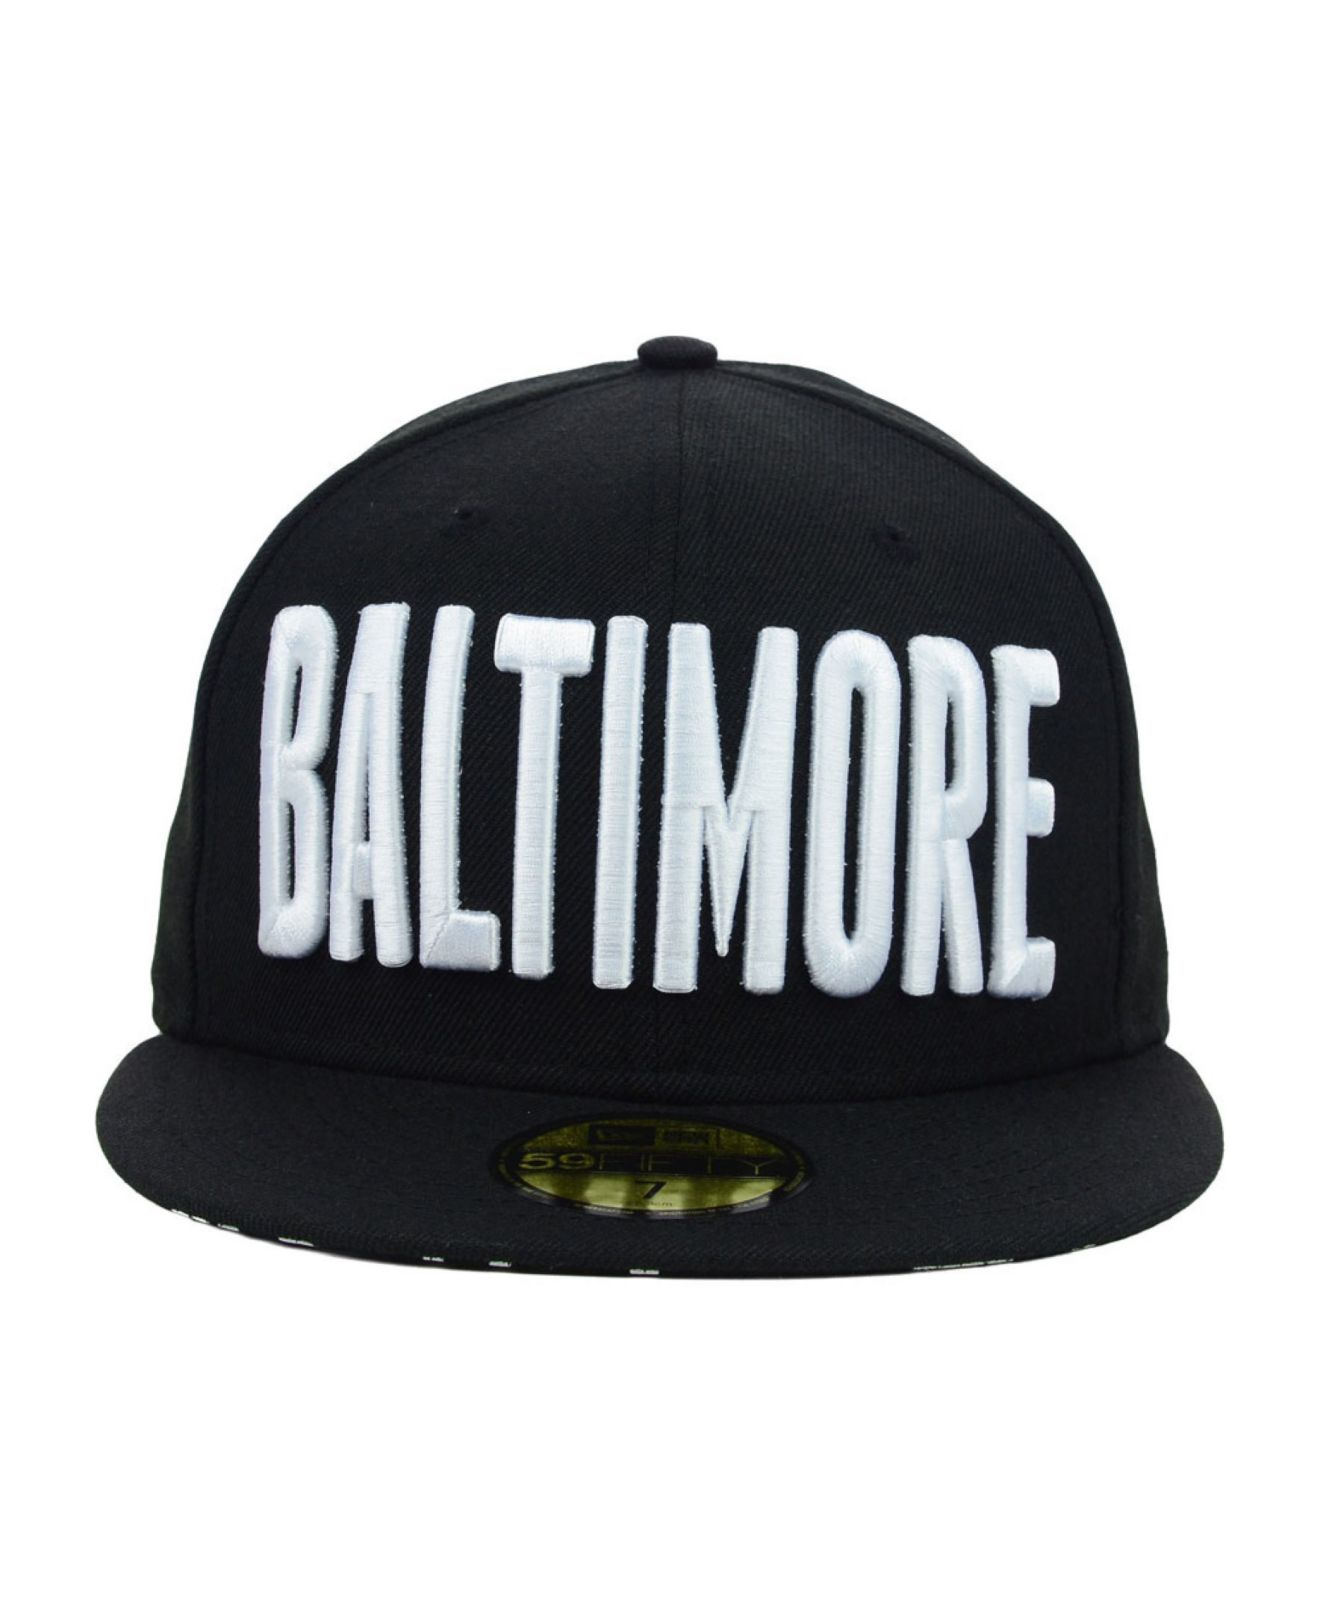 the best attitude f26a7 48a8c ... usa lyst ktz baltimore orioles mlb big gps 59fifty cap in black for men  2ac8b 8d911